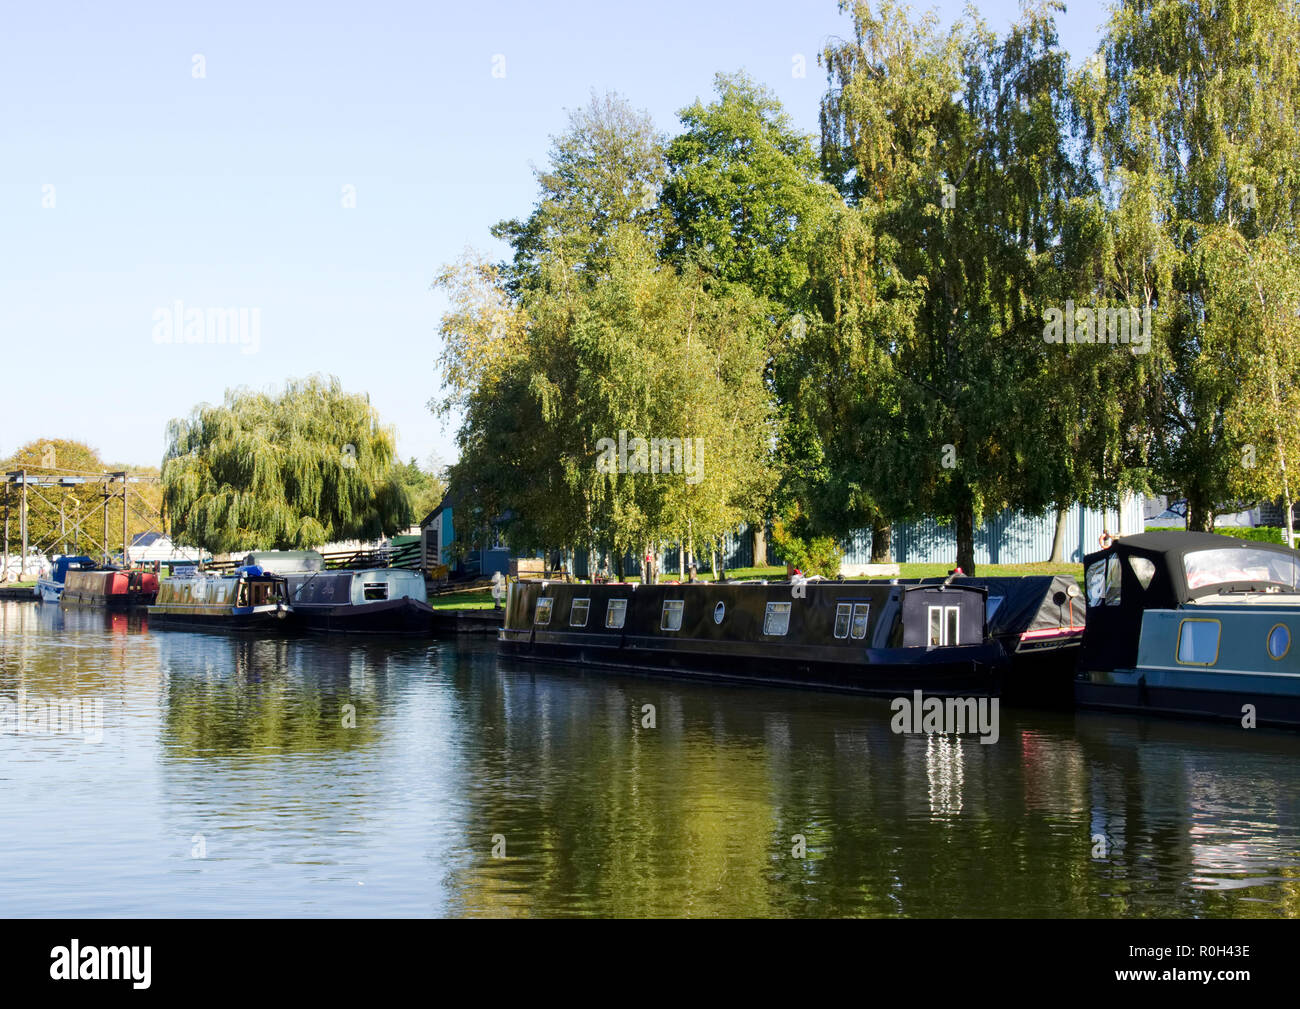 The Great Ouse river flowing through the pretty cathedral town of Ely, Cambridgeshire is popular with boating enthusiasts and barge dwellers. Stock Photo